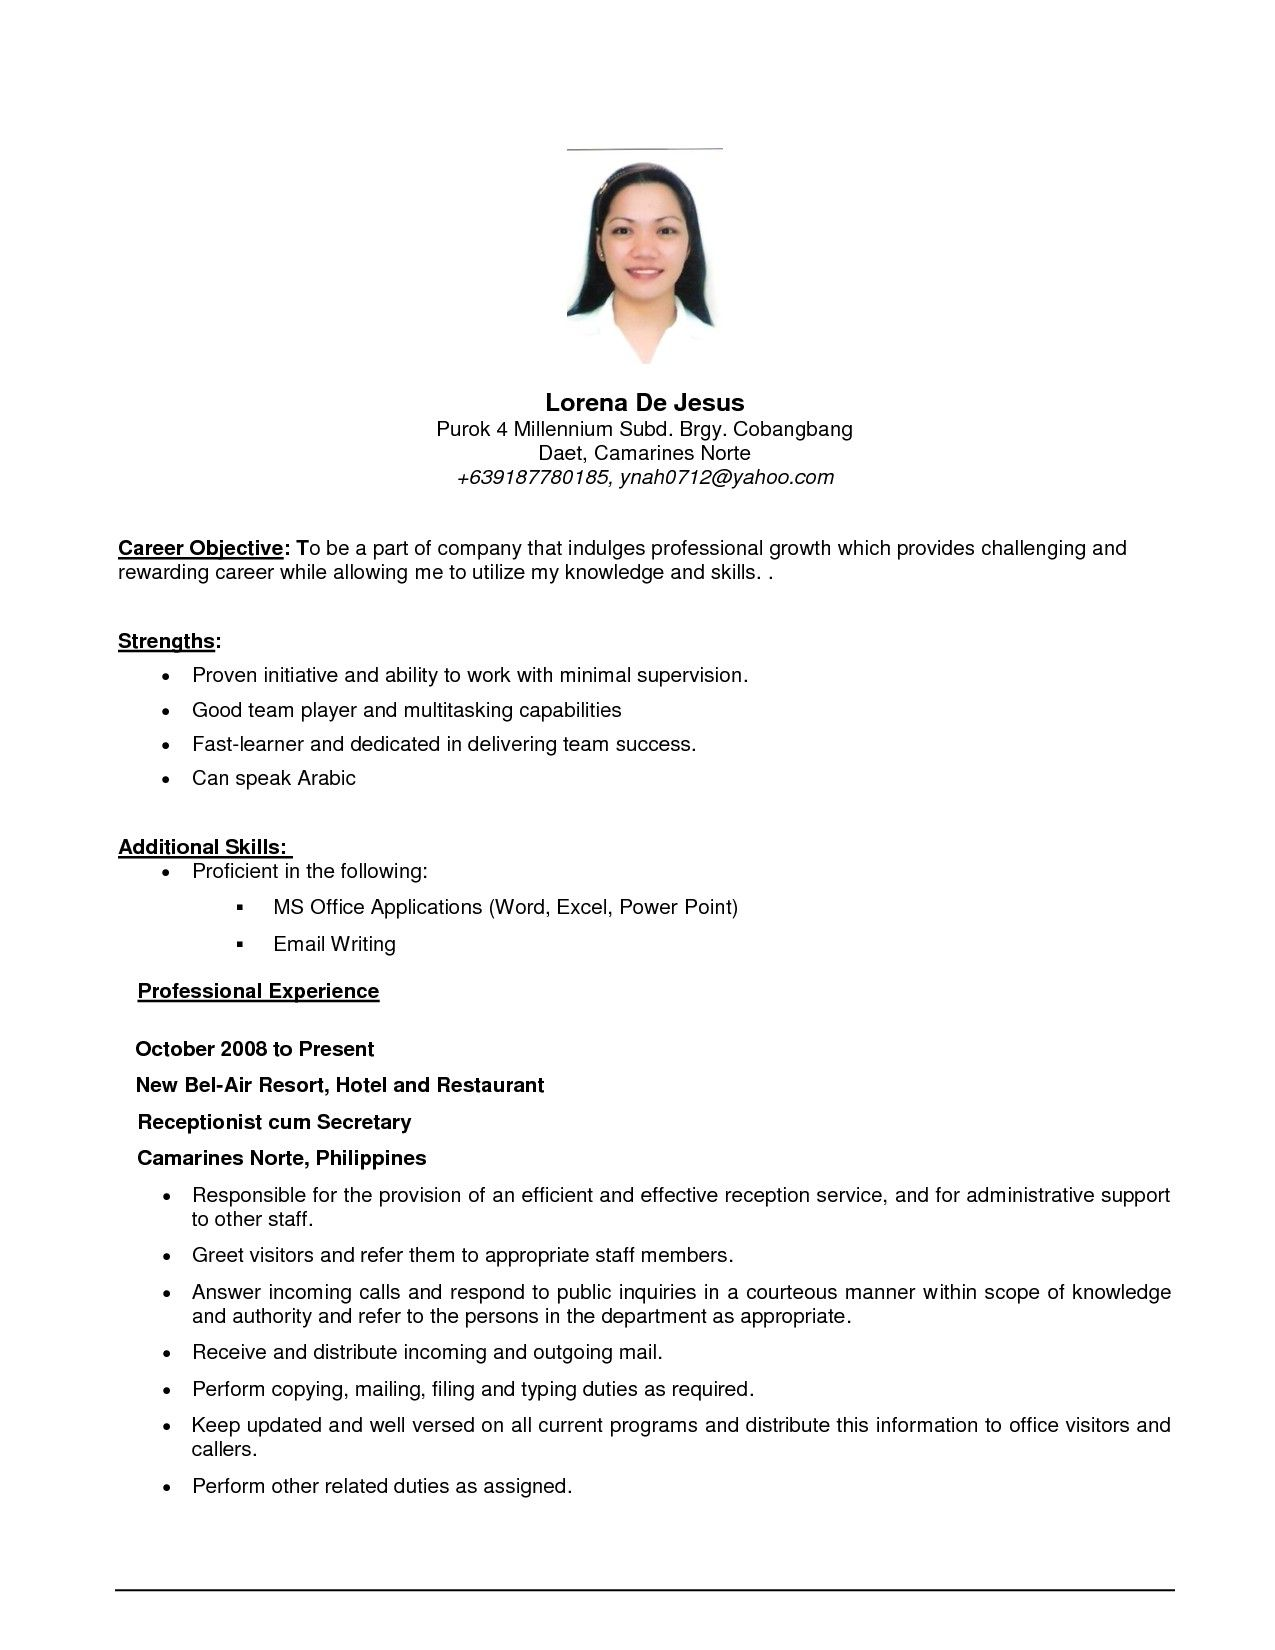 Pin By Sktrnhorn On Resume Letter Ideas Career Objectives For Resume Job Resume Examples Resume Objective Examples